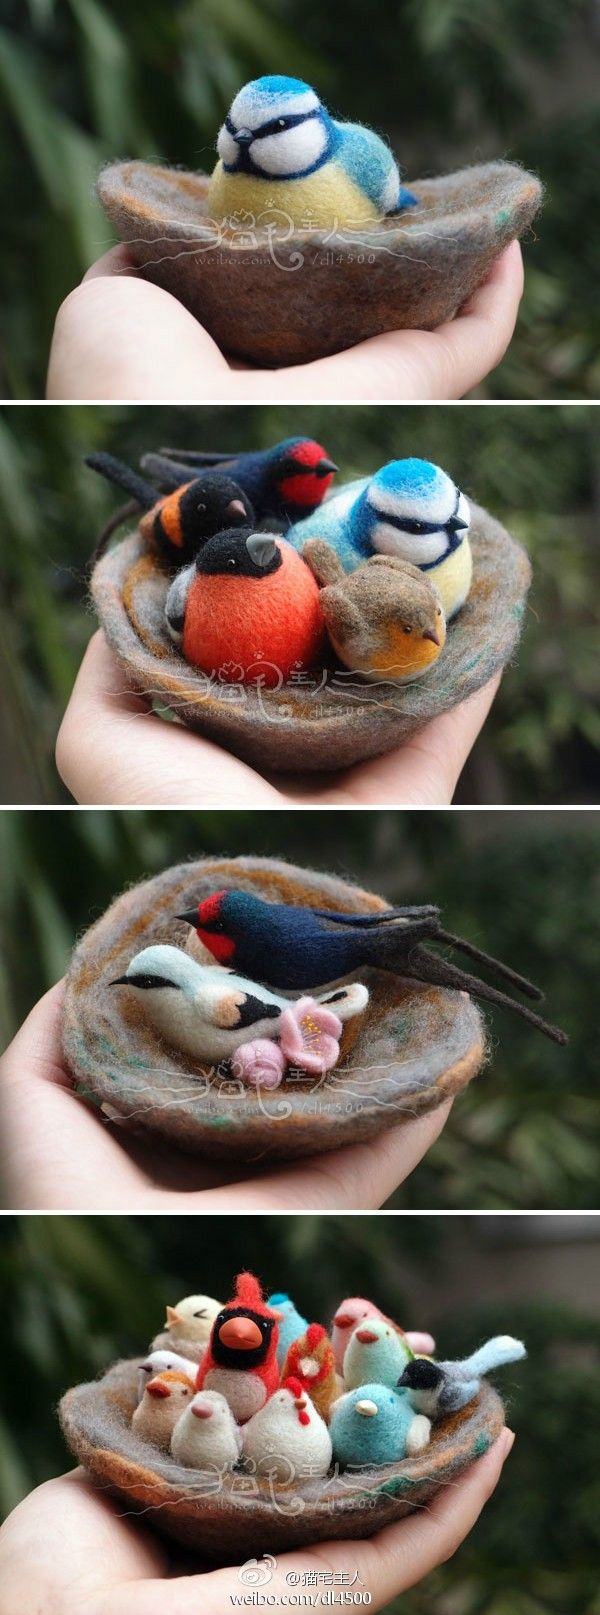 Beautiful needle felting - I made this with fimo and put it in my garden- few months later the birds were on the ground and birds had made their home in it!